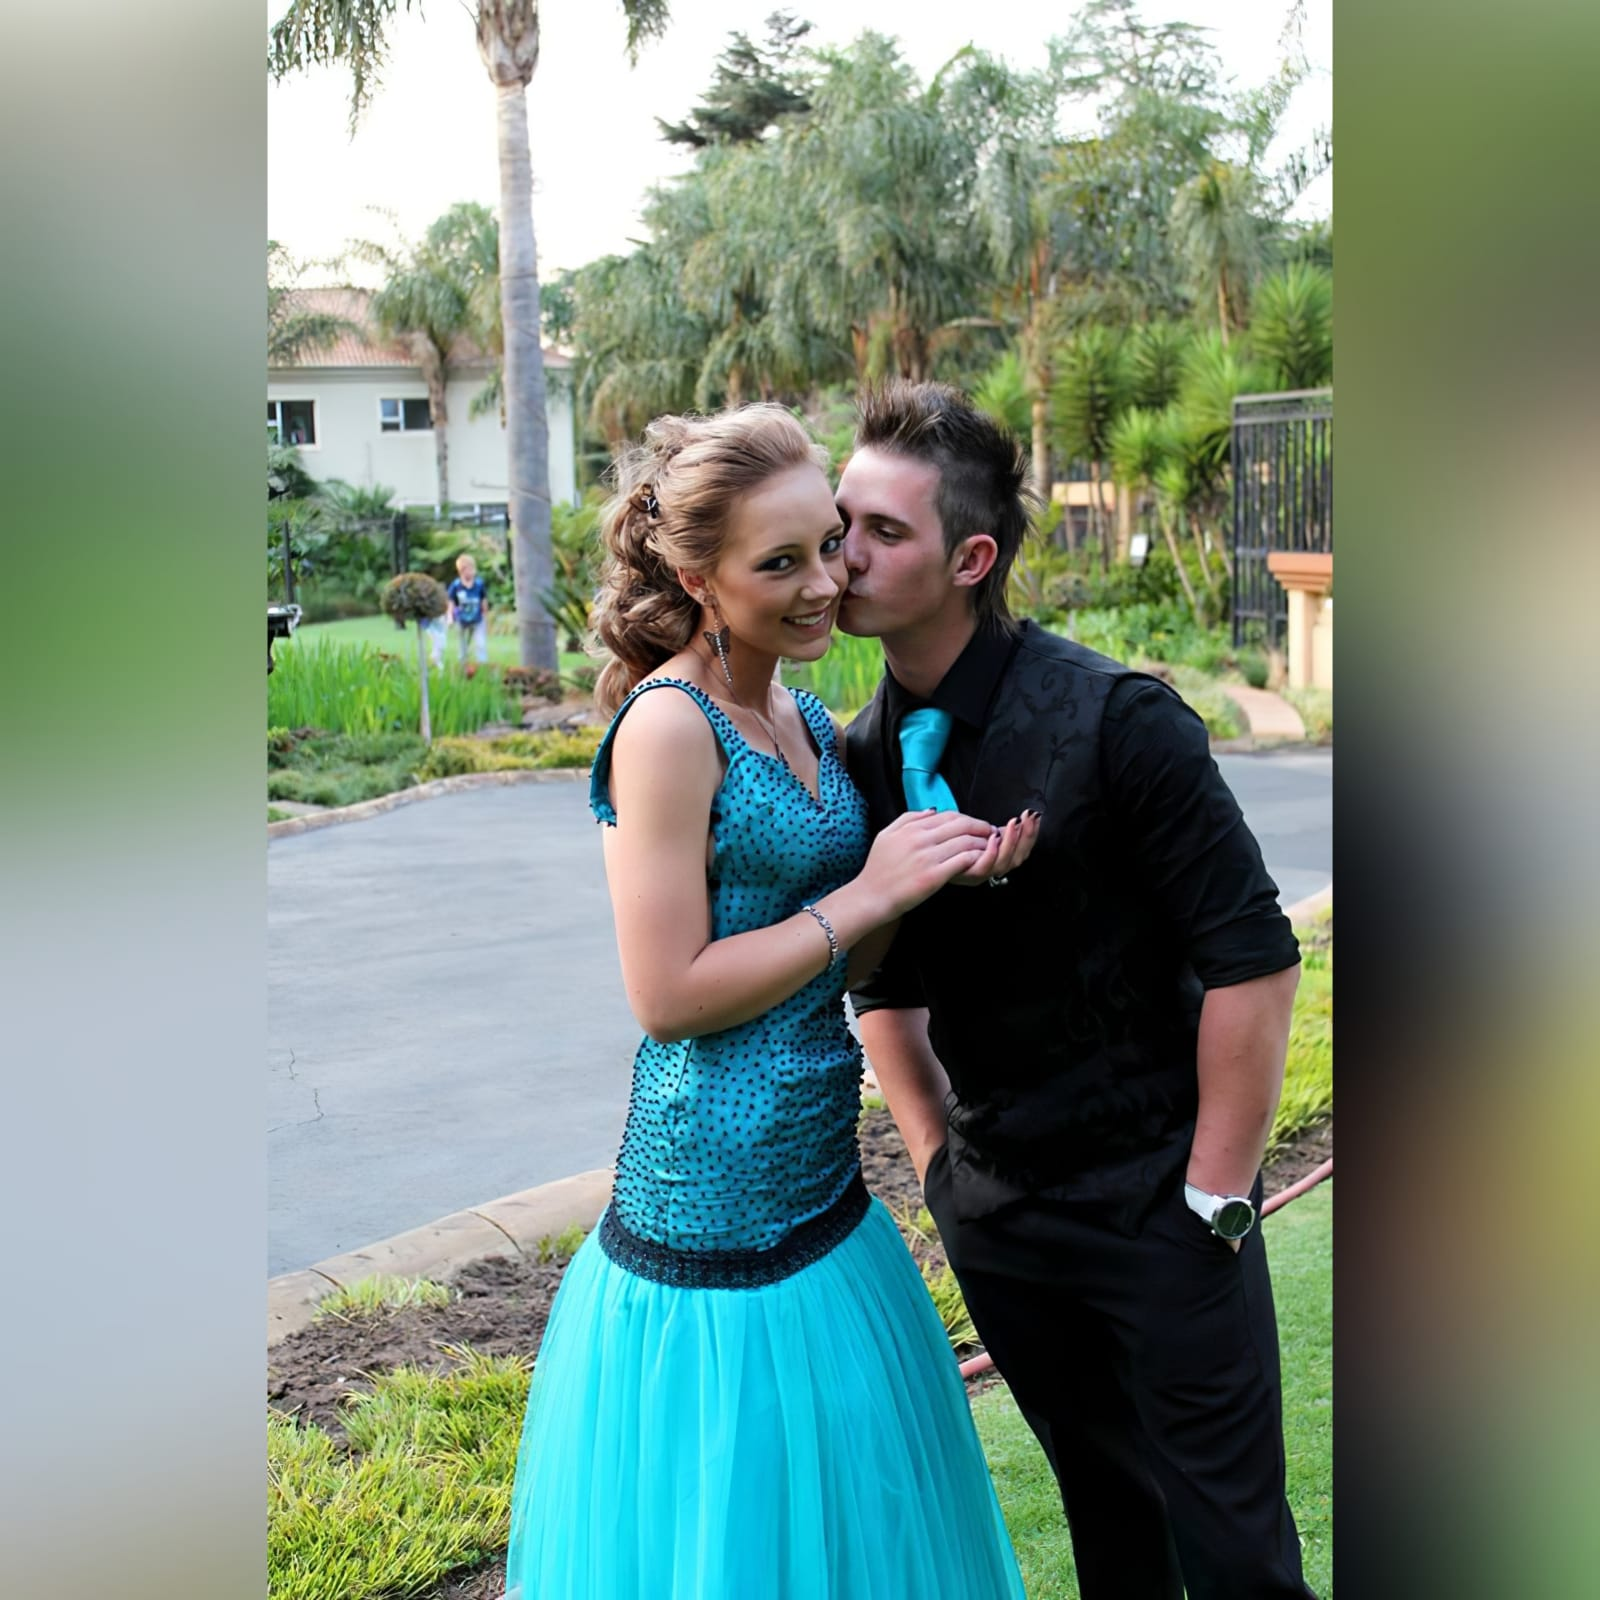 Turquoise blue and black matric farewell dress 1 turquoise blue and black matric farewell dress with a scattered beaded bodice with a low open back and a tulle bottom.